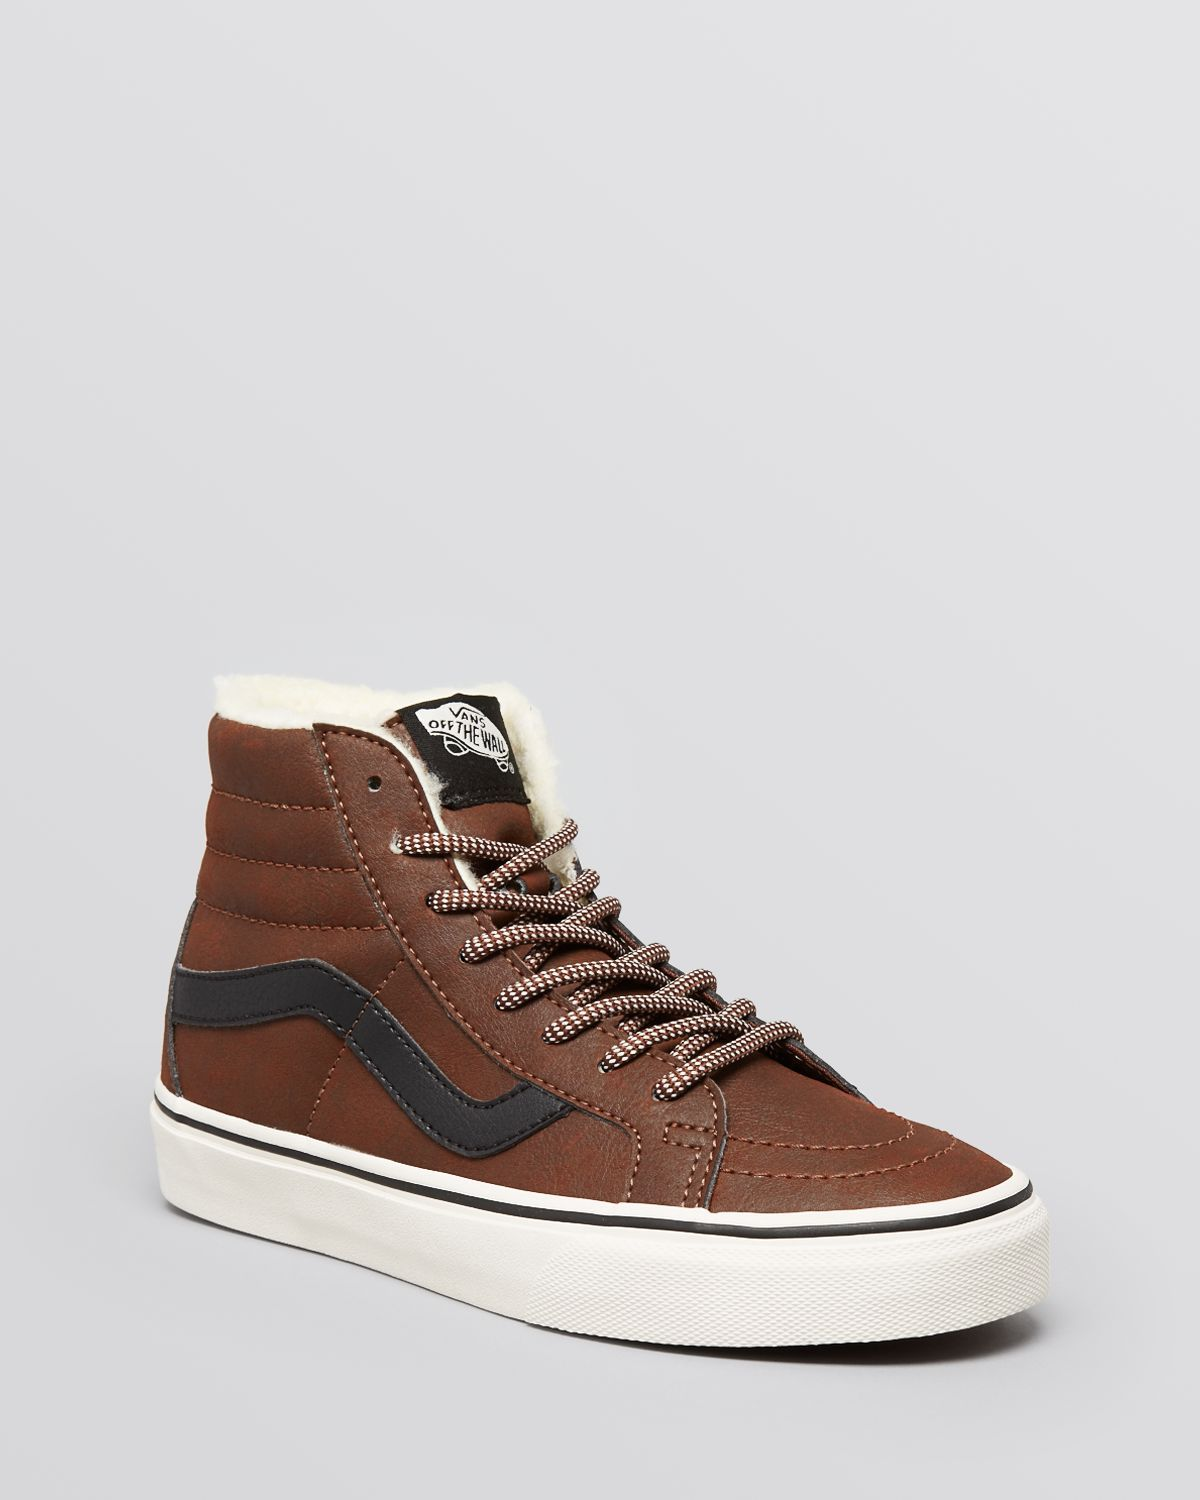 21dee622931d Lyst - Vans Lace Up High Top Sneakers ...